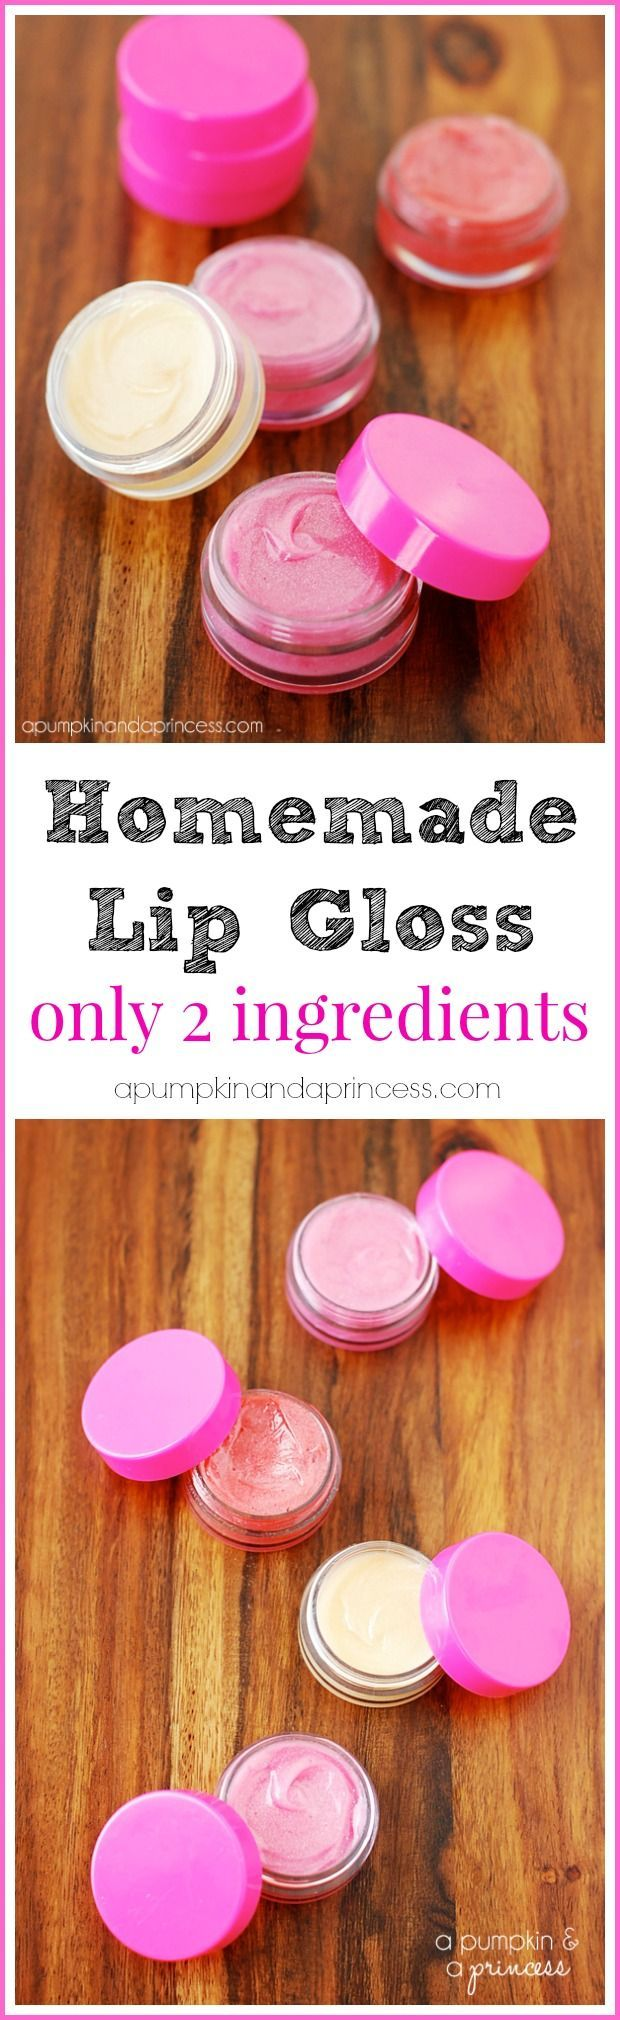 DIY Lip Gloss Tutorial - great stocking stuffer idea!